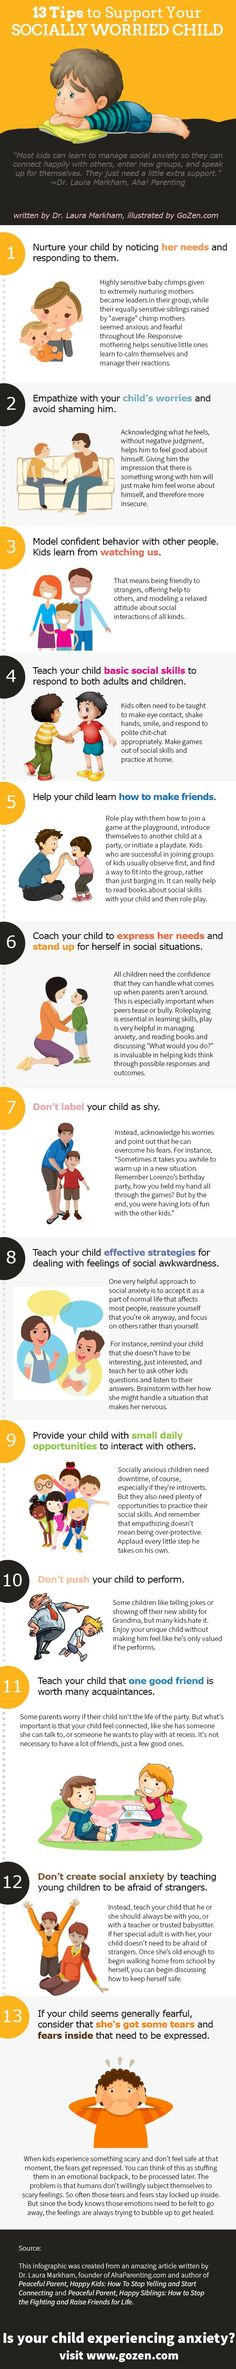 Shy child? 13 Tips to Help | gozen.com